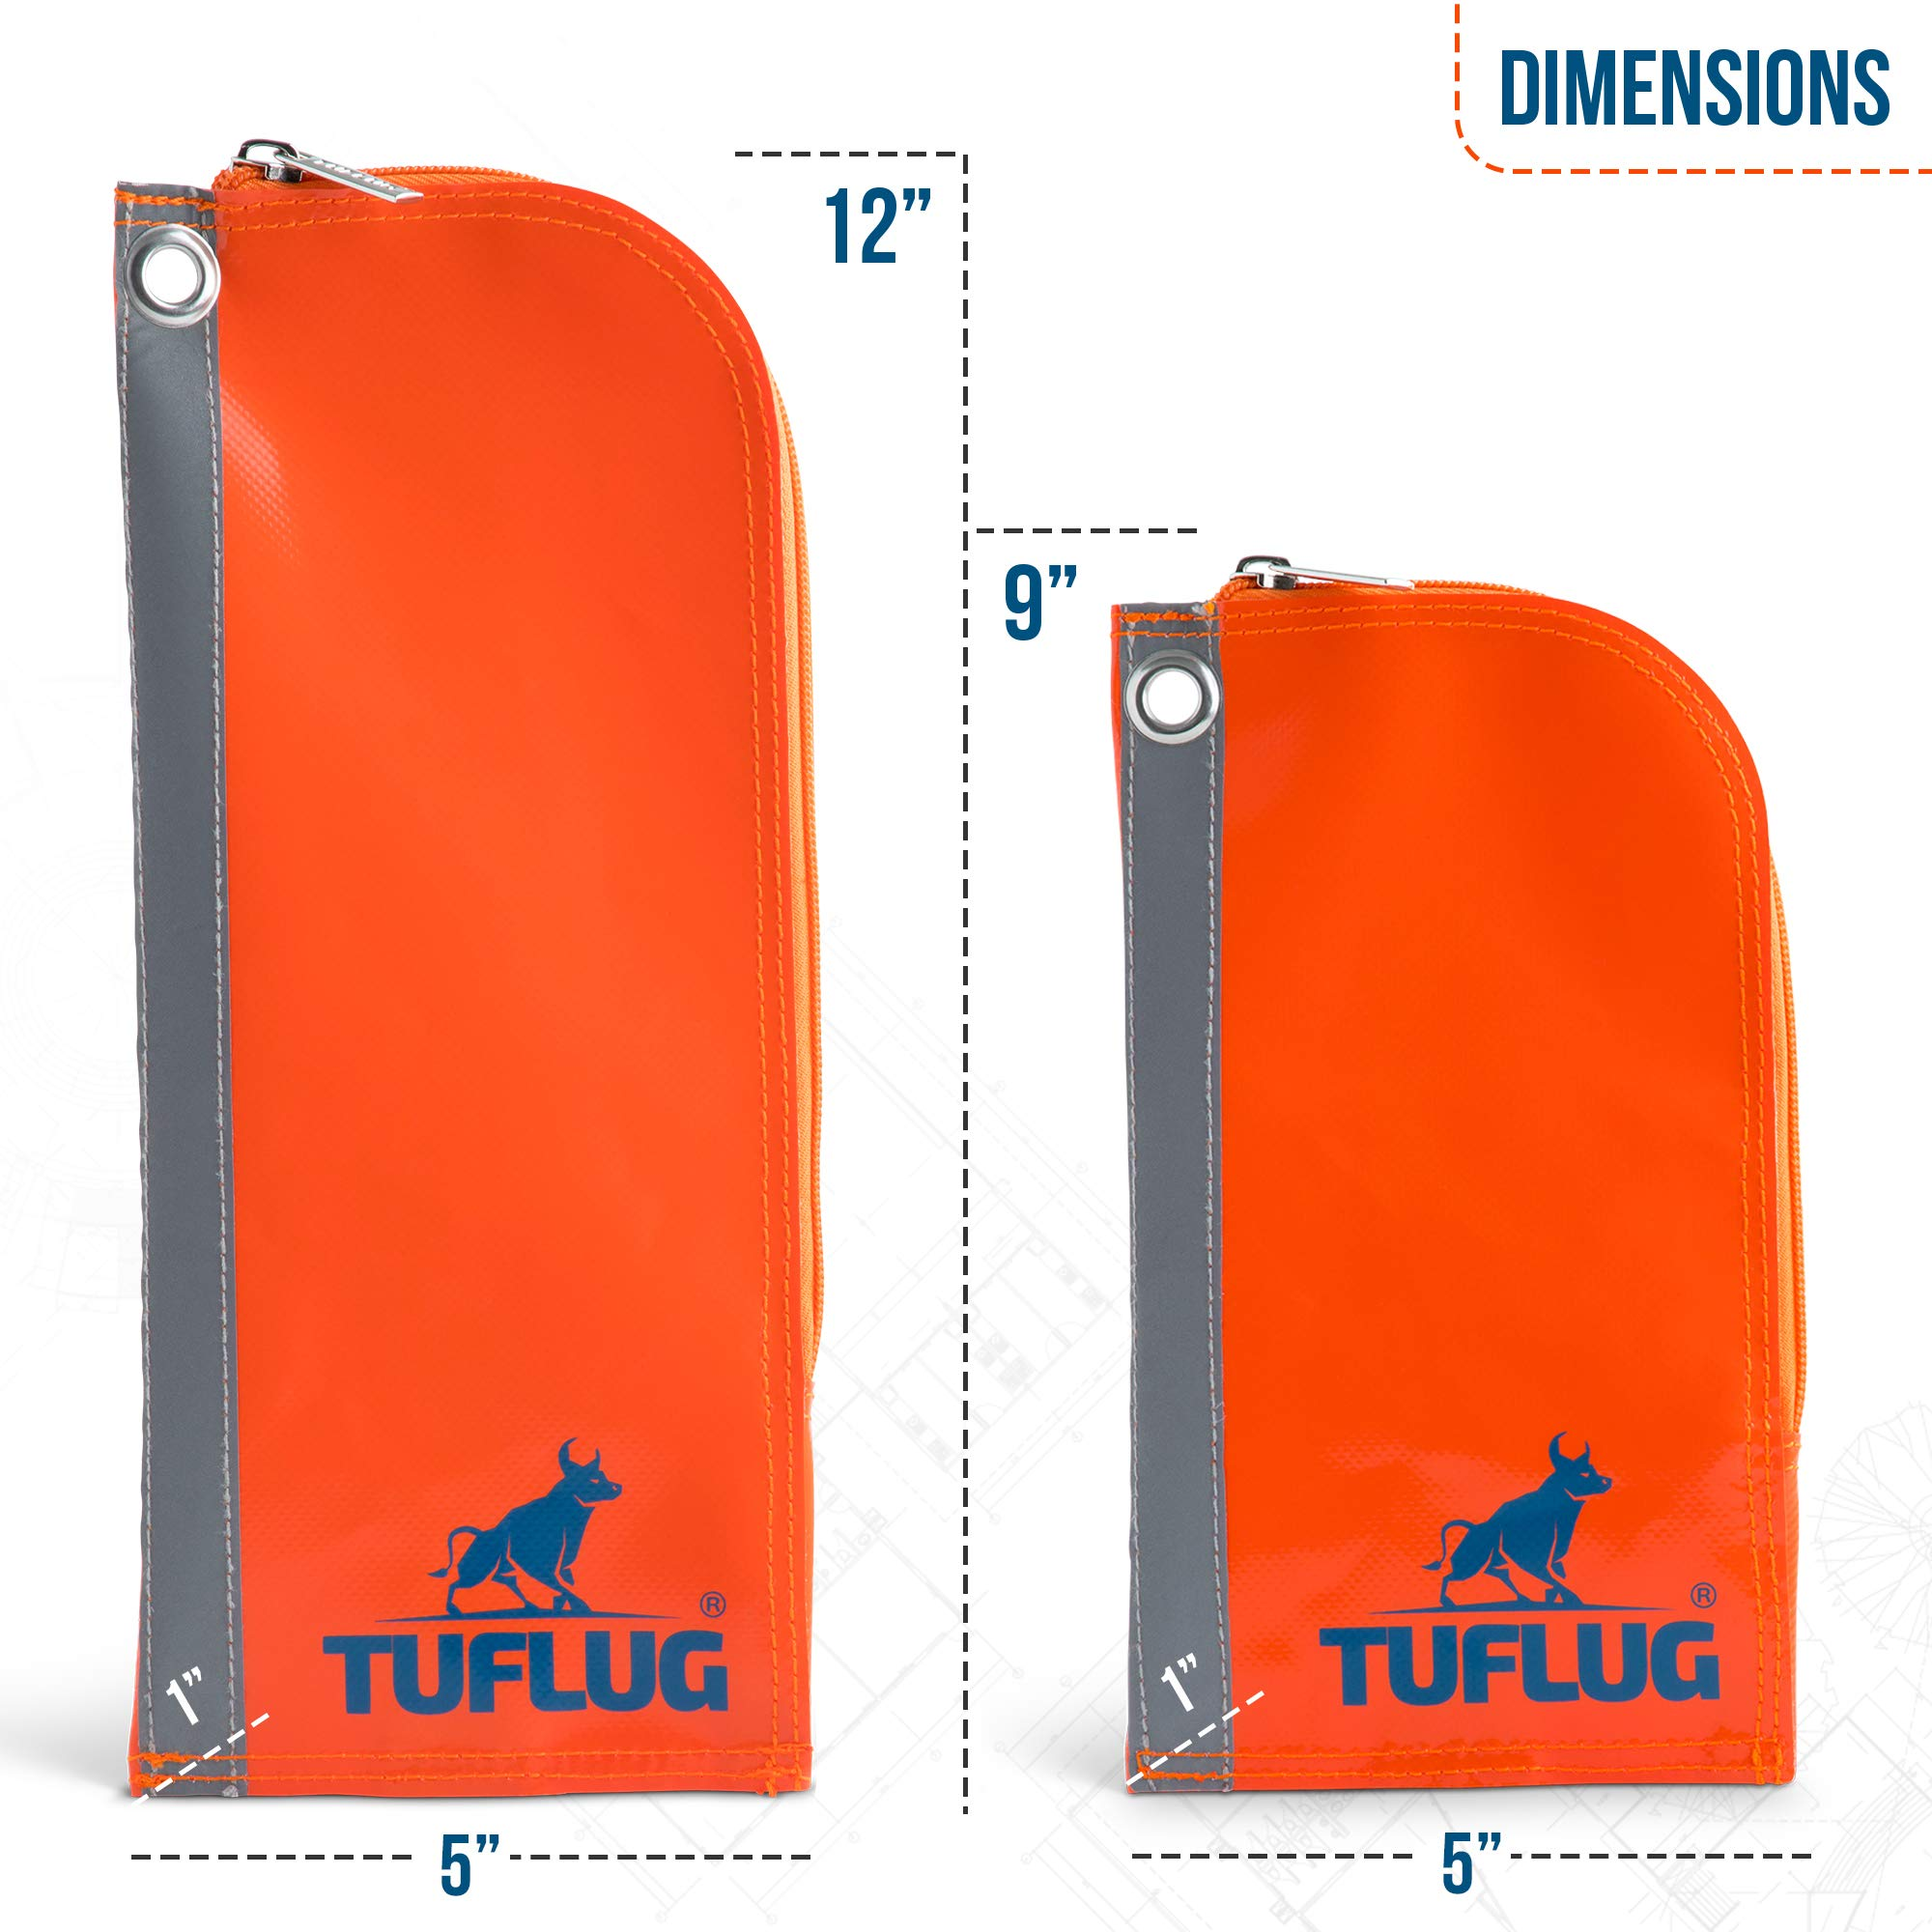 Heavy Duty Zipper Tool Pouch, 2 Pack, 12inch and 9inch - Waterproof, Lightweight, Multipurpose Utility Bag Carry Case For Small Tools - Storage Pouches, Accessories for Work Belts - PVC, Canvas by TUFLUG (Image #2)